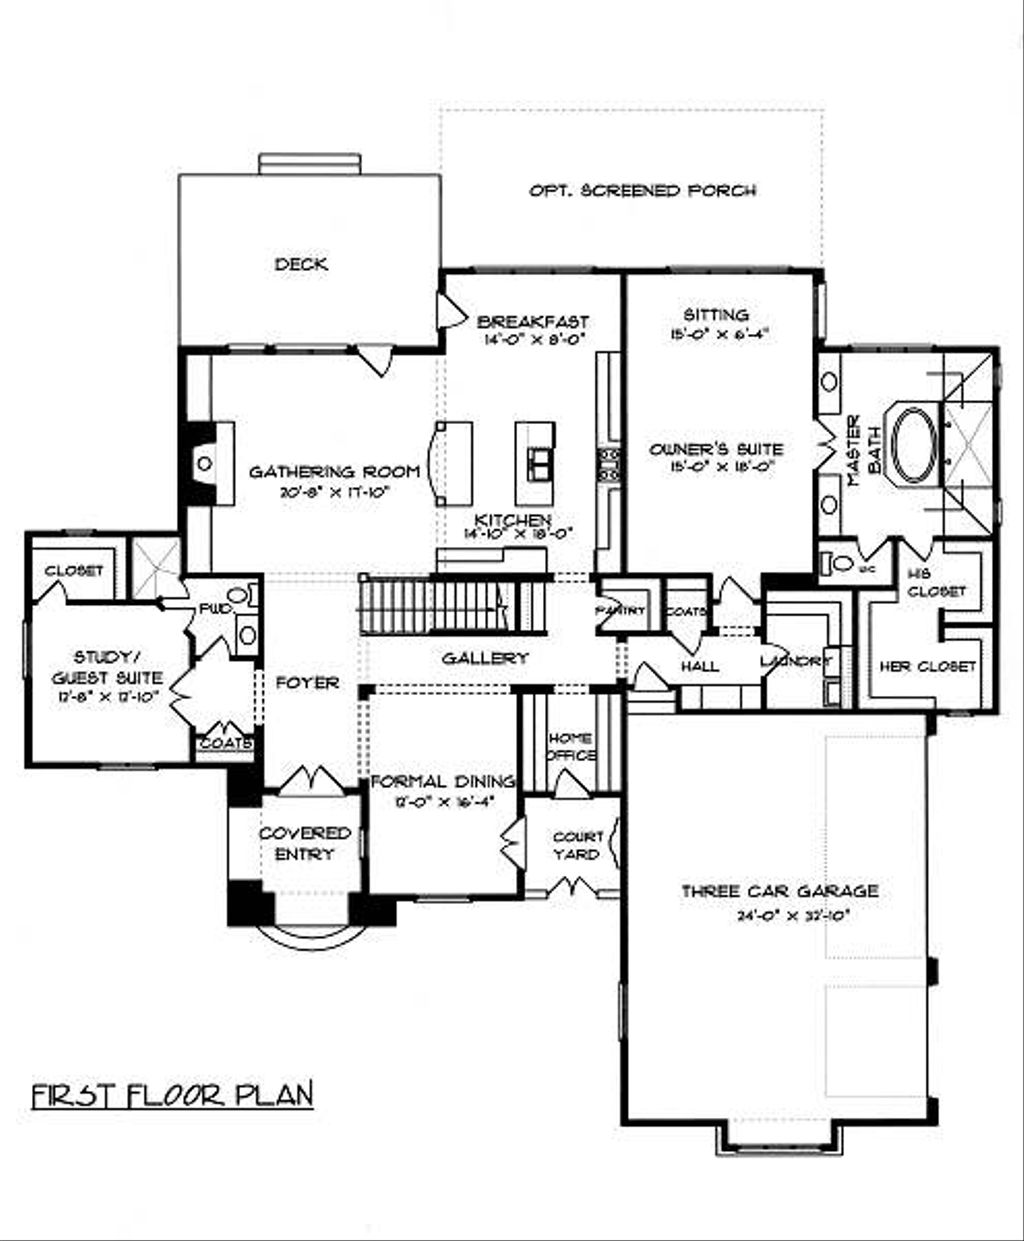 European style house plan 5 beds 4 baths 4797 sq ft plan for Www eplans com